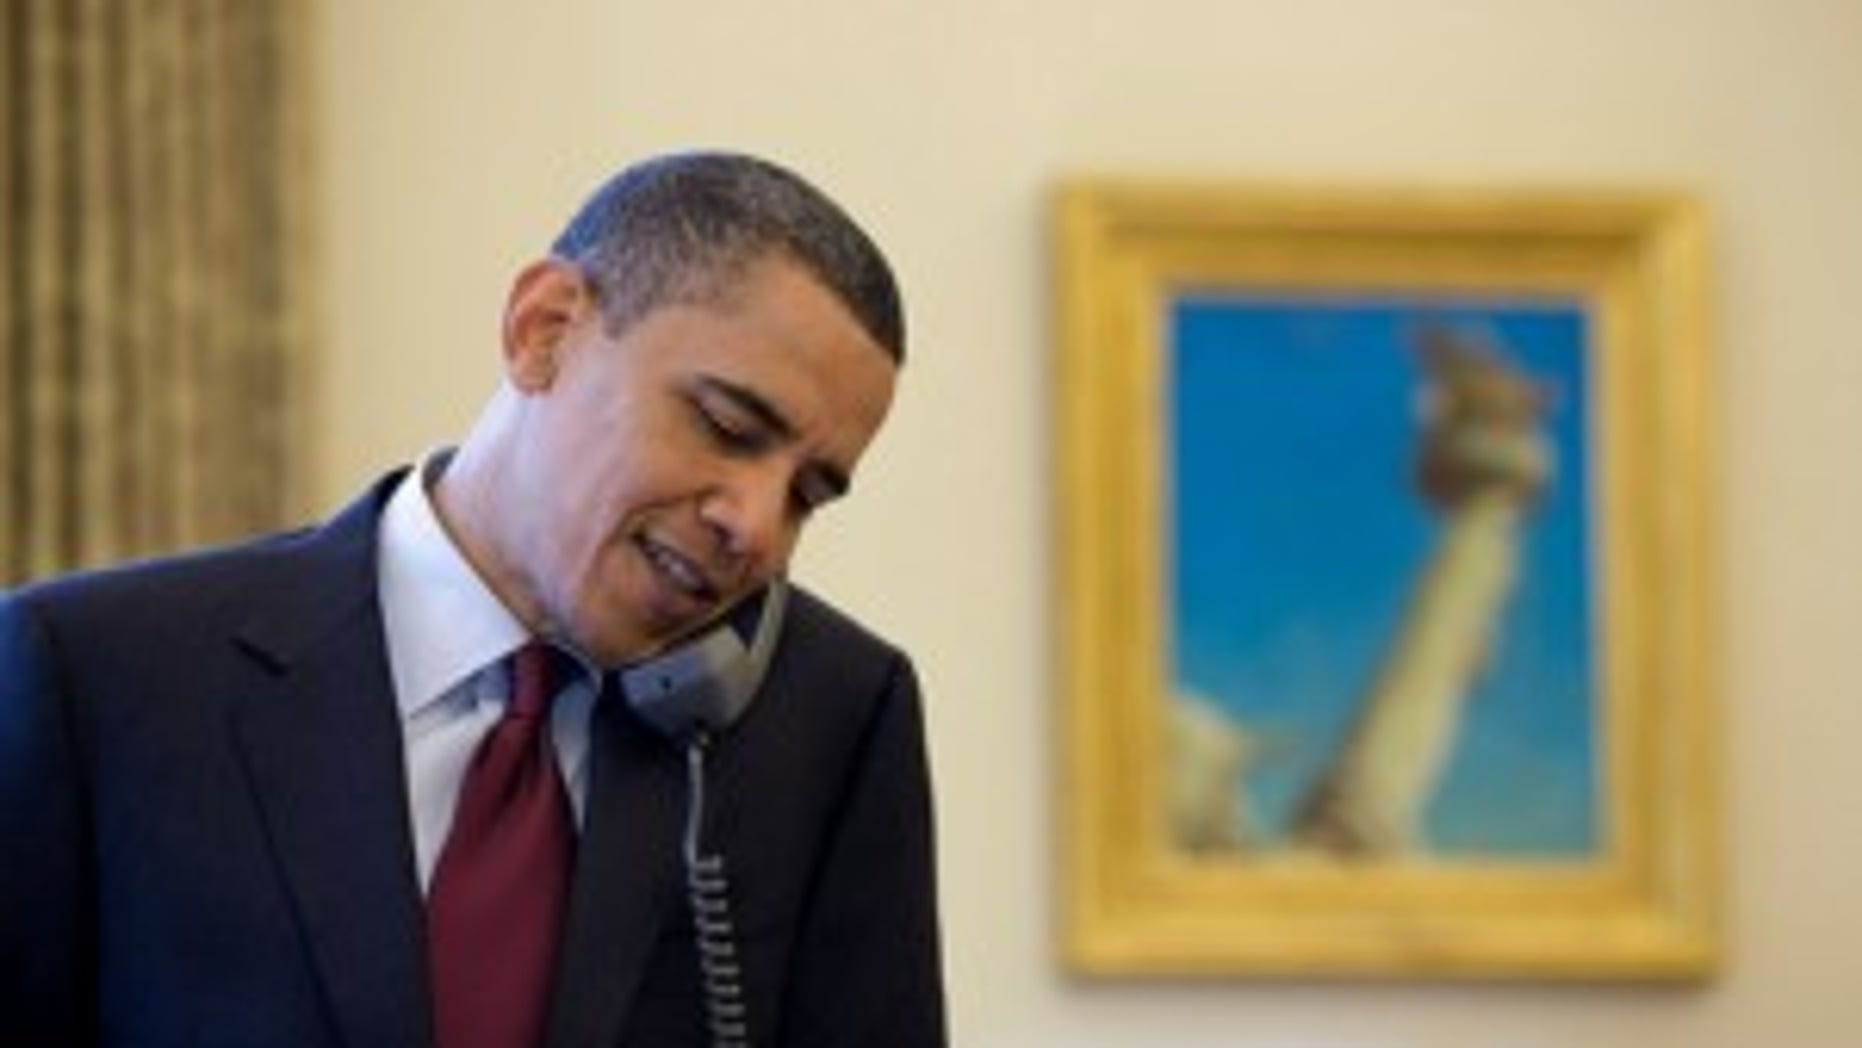 President Barack Obama talks on the phone with Associate Justice John Paul Stevens, in the Oval Office, after announcing that he would be retiring from the Supreme Court, April 9, 2010. (Official White House Photo by Pete Souza)